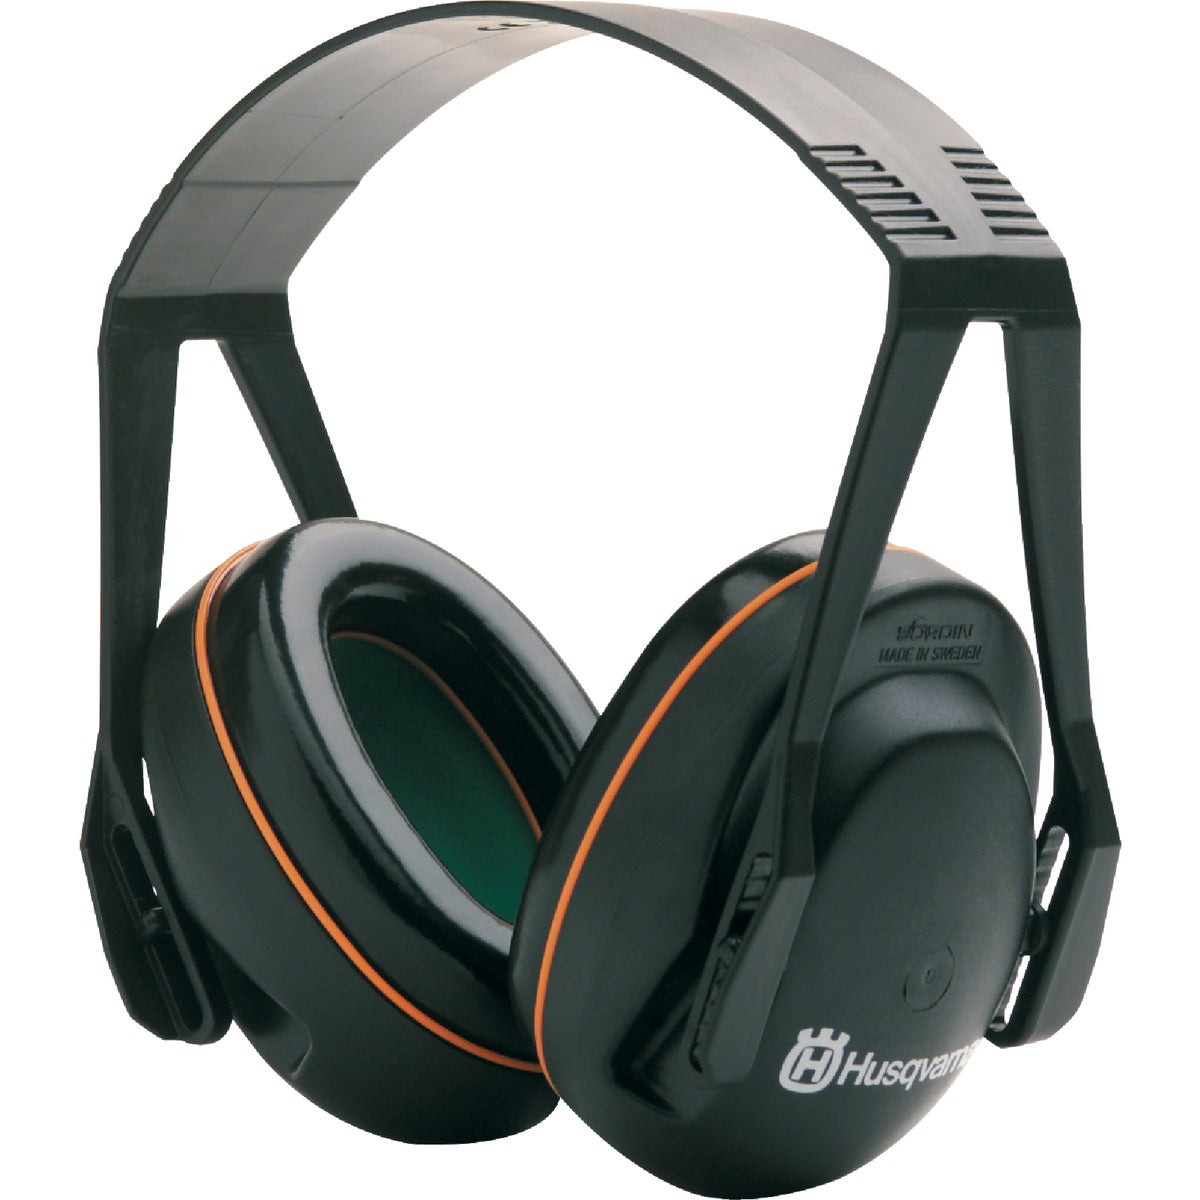 HEARING PROTECTORS - 531300089 by Husqvarna Outdoor